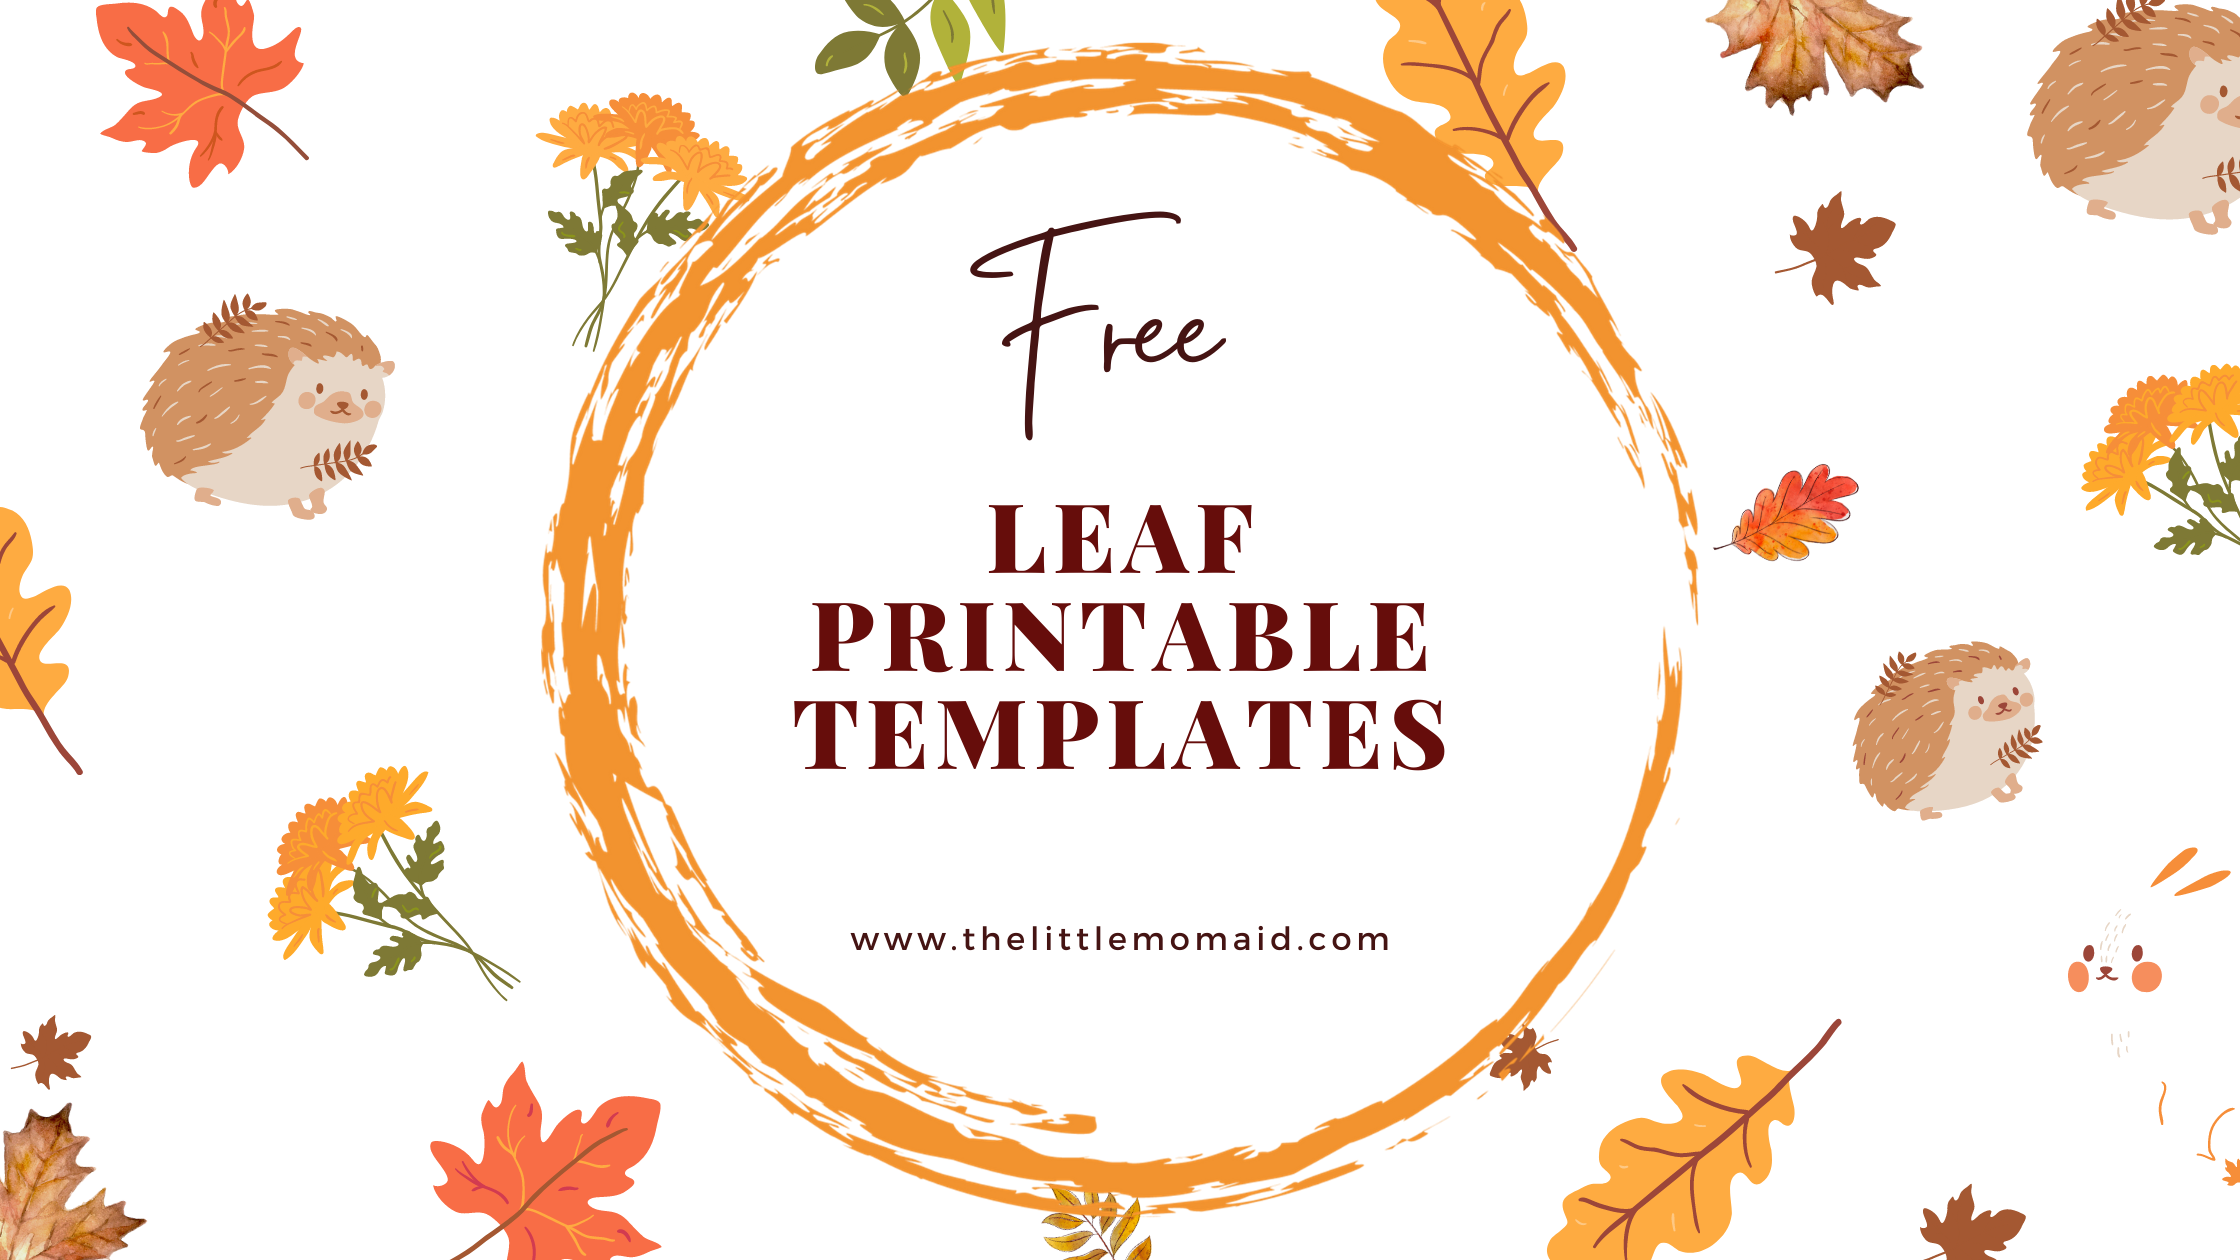 Free printable leaf templates for creating crafts, banners, coloring pages and for painting. These leaf patterns and leaf stencils are perfect for your fall crafts.